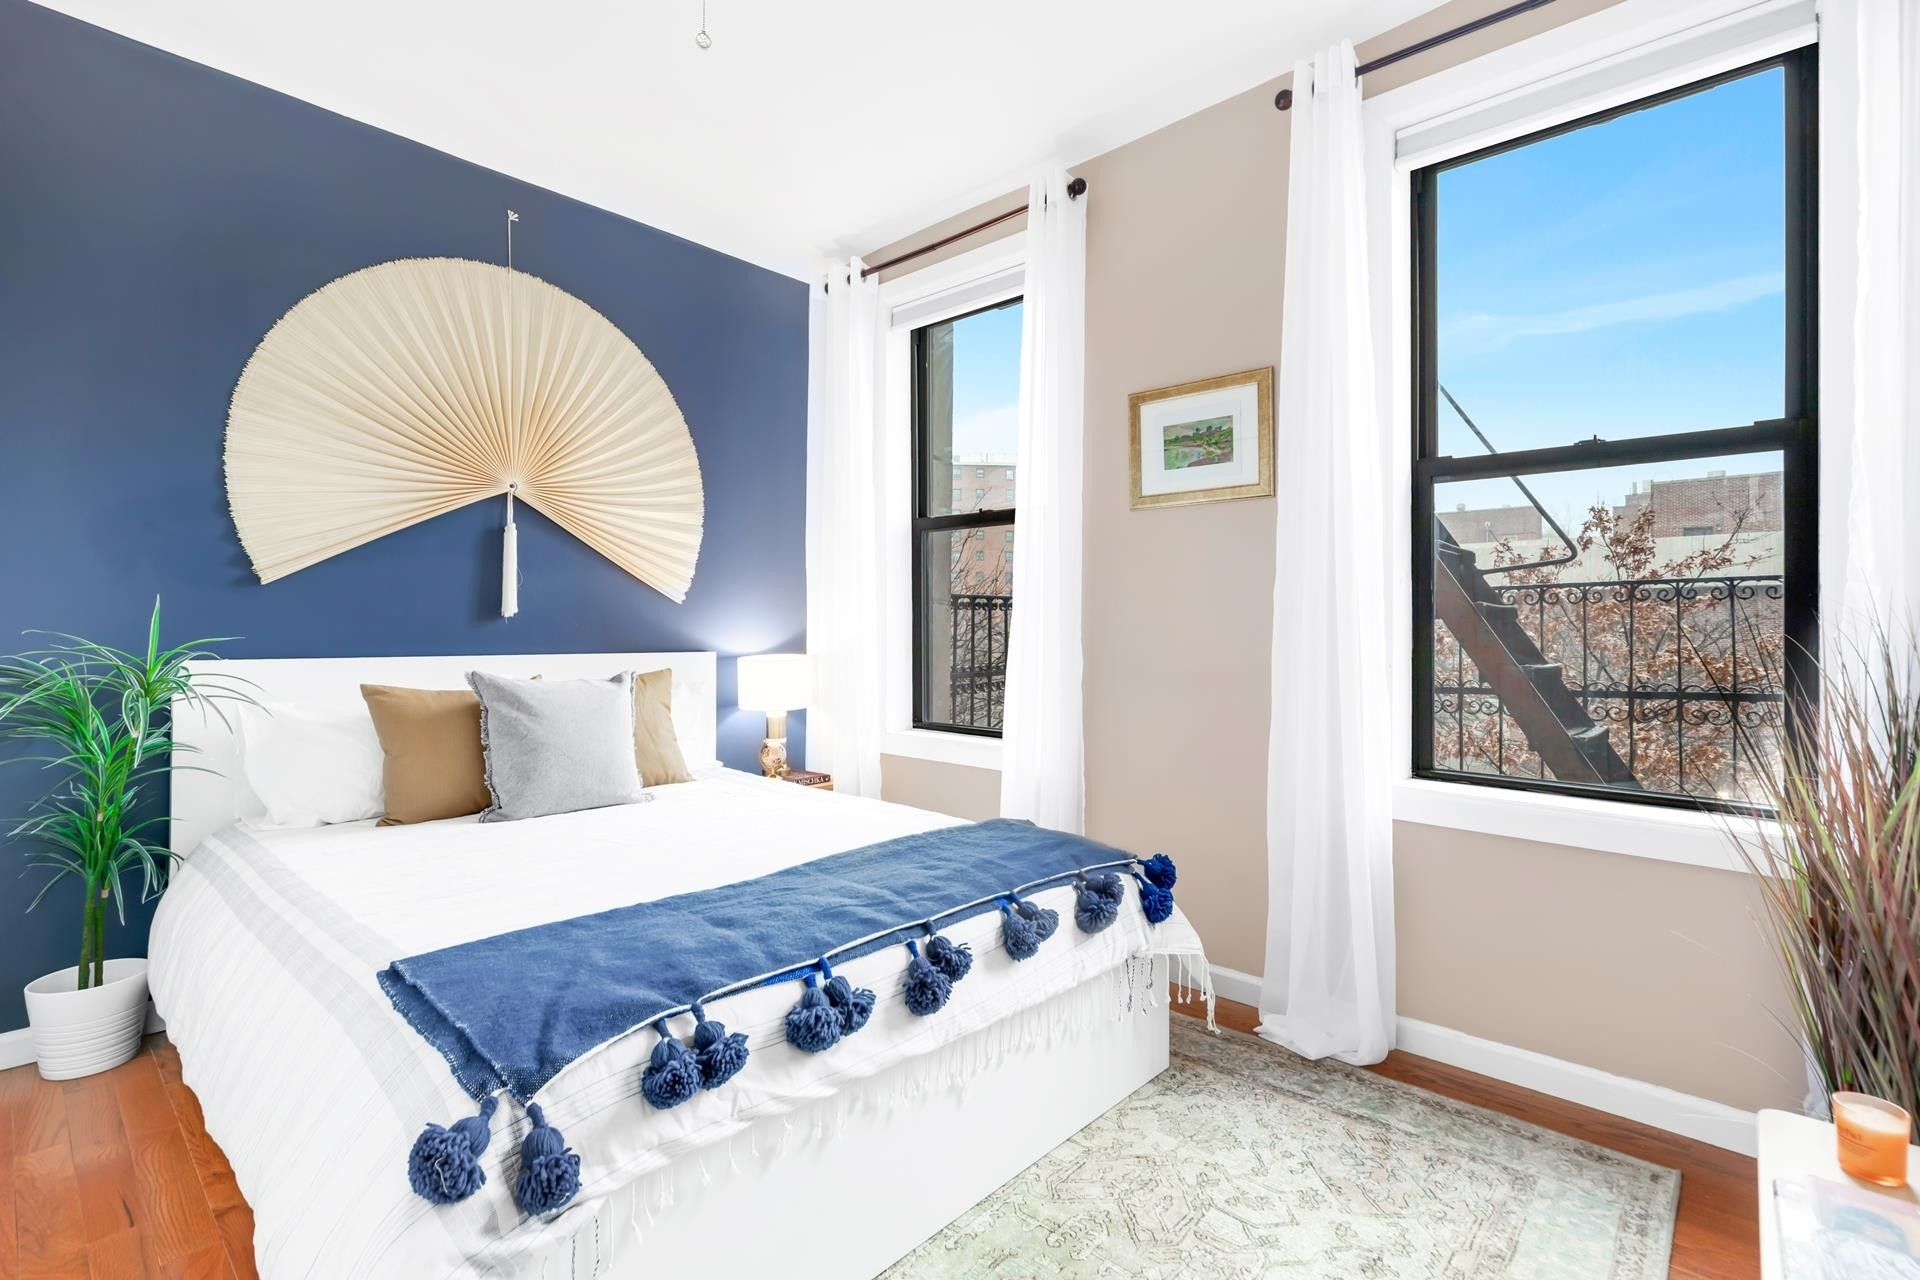 Property en 501 West 122nd St, A5 Morningside Heights, New York, NY 10027